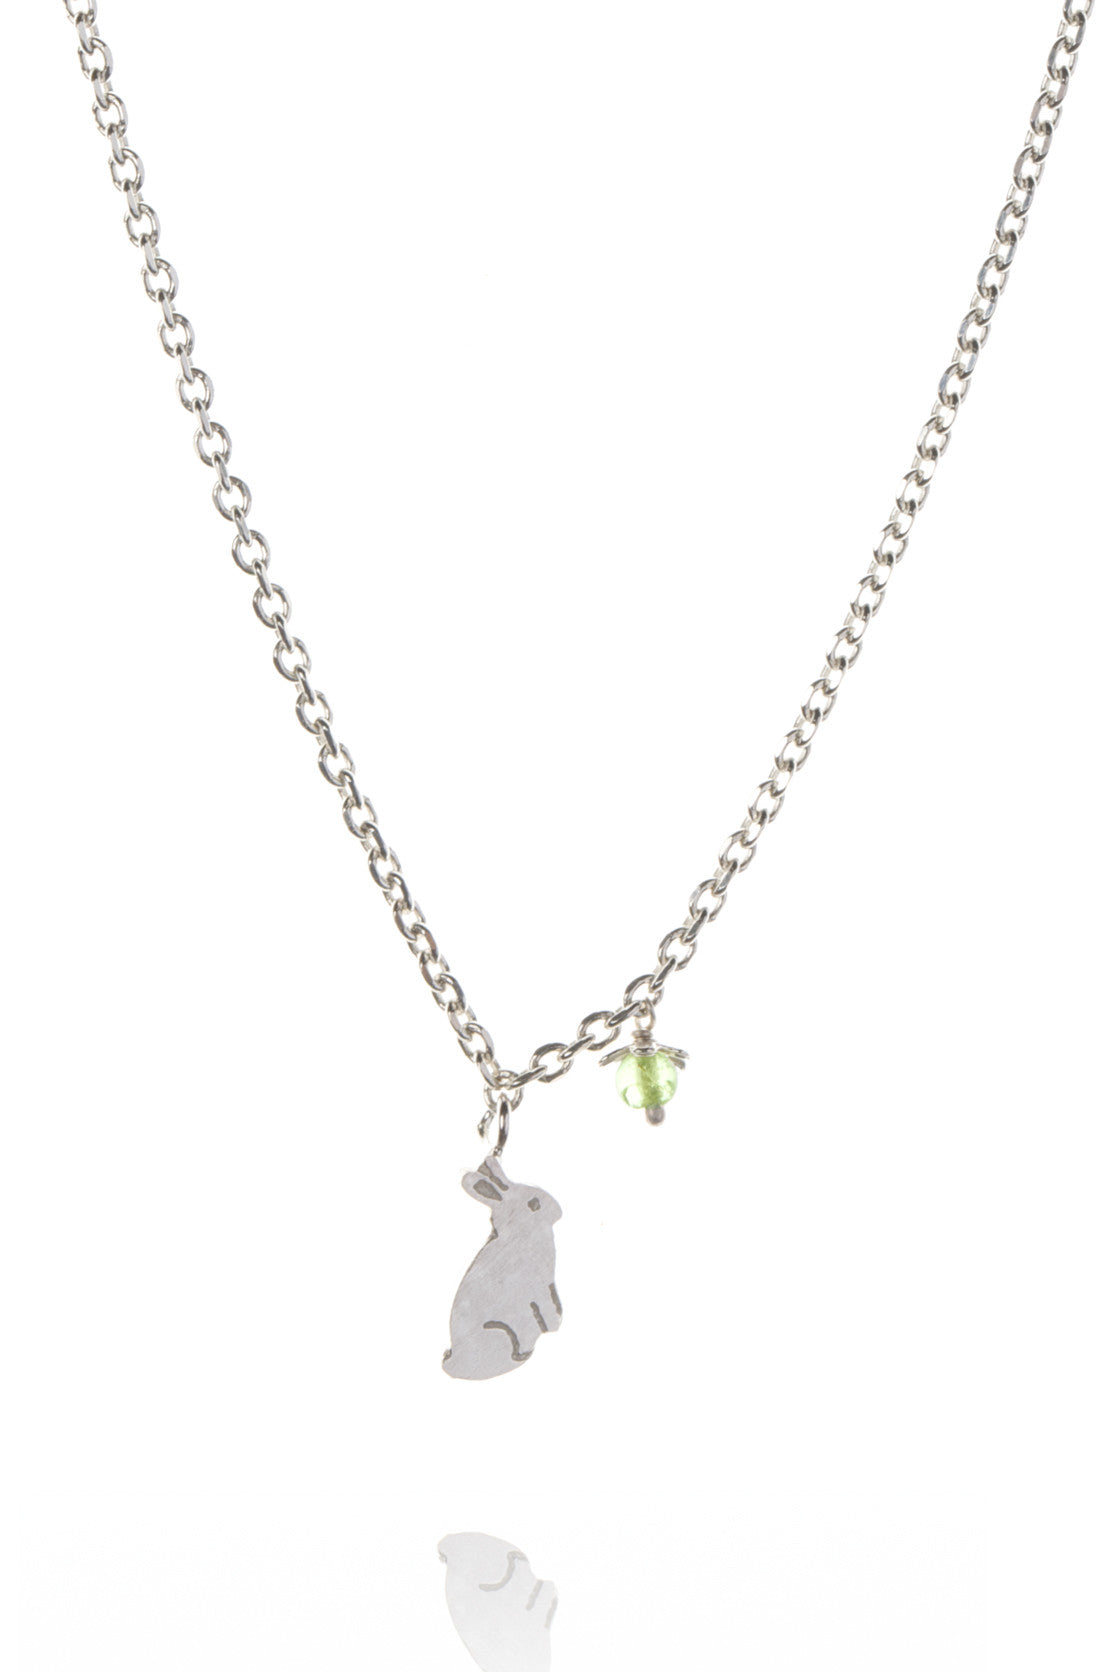 925 Sterling Silver with green peridot